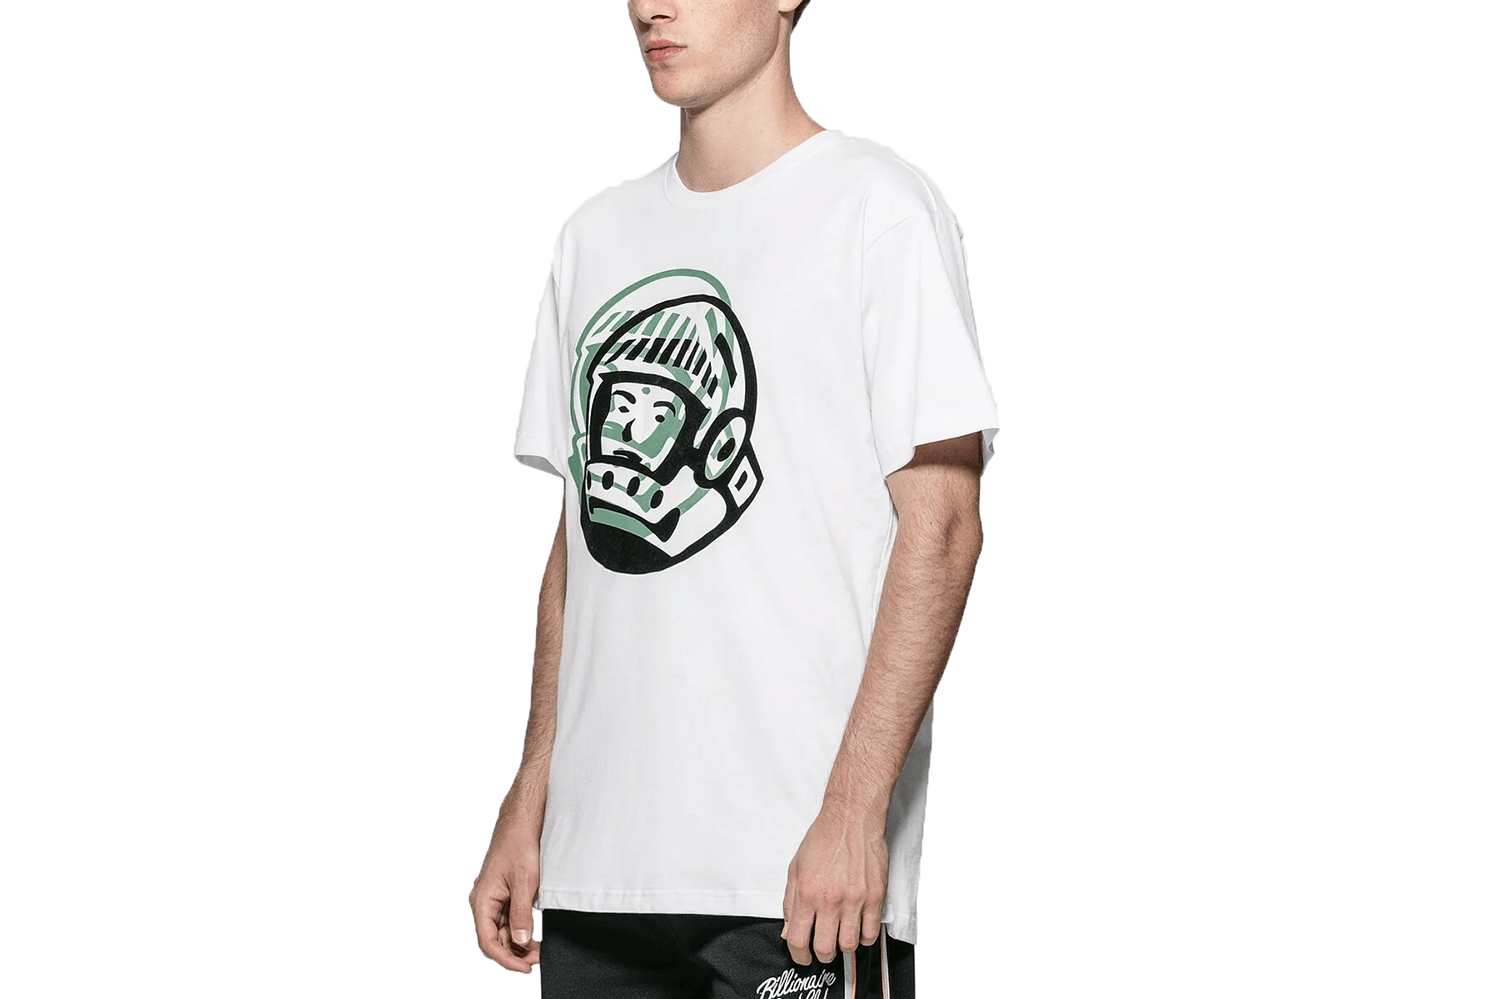 BB DOUBLEED SS TEE - 891-7212 MENS SOFTGOODS BILLIONAIRE BOYS CLUB